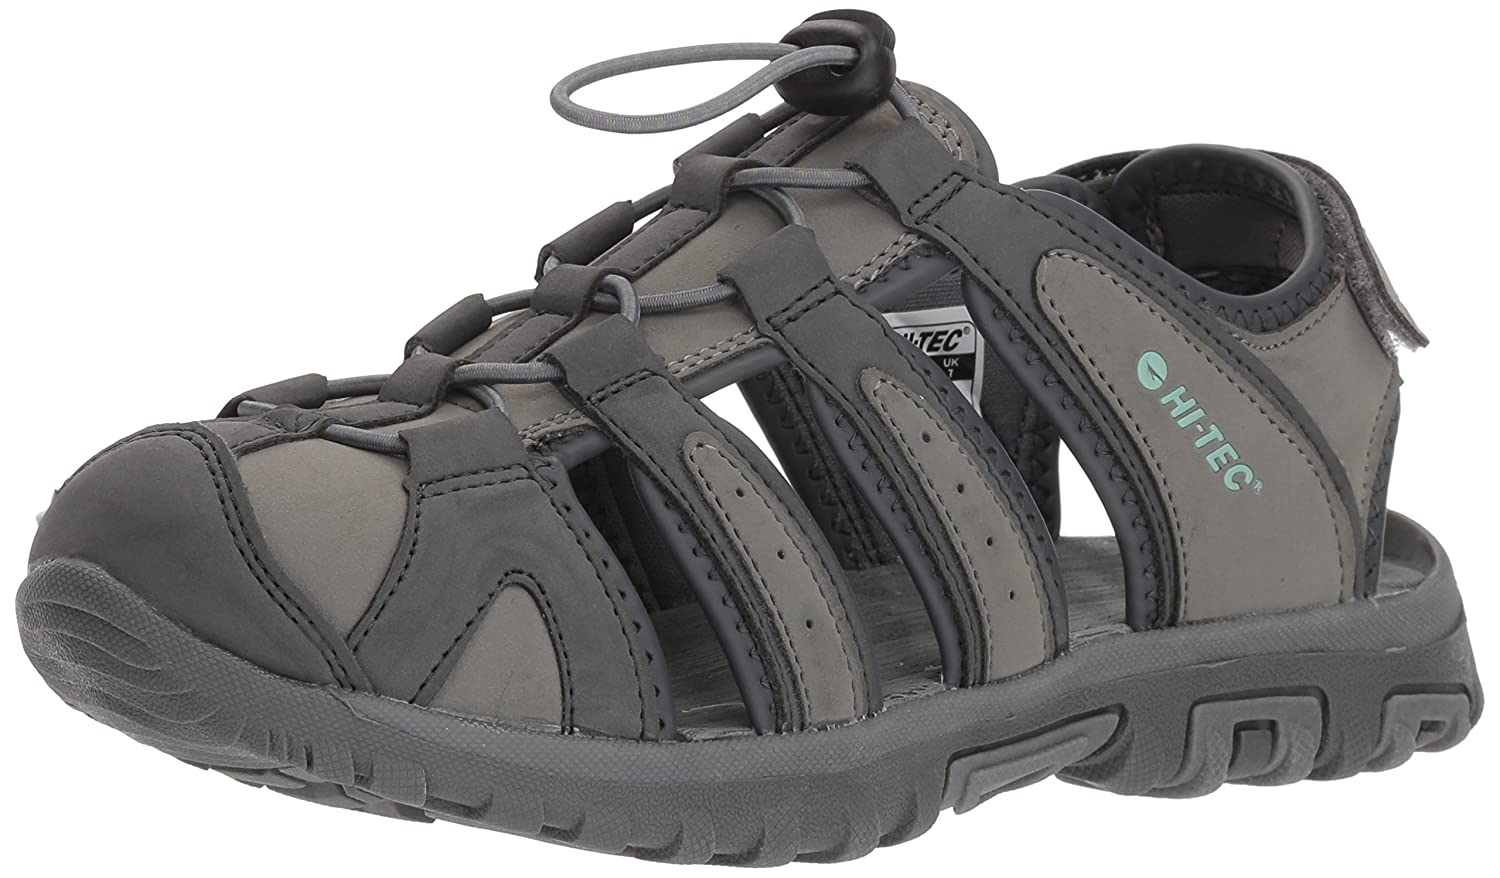 Hi-Tec Women's Cove Ii Shandal Fisherman Sandal B074PX1SXN 110M Medium US|Cool Grey/Graphite/Iceberg Green